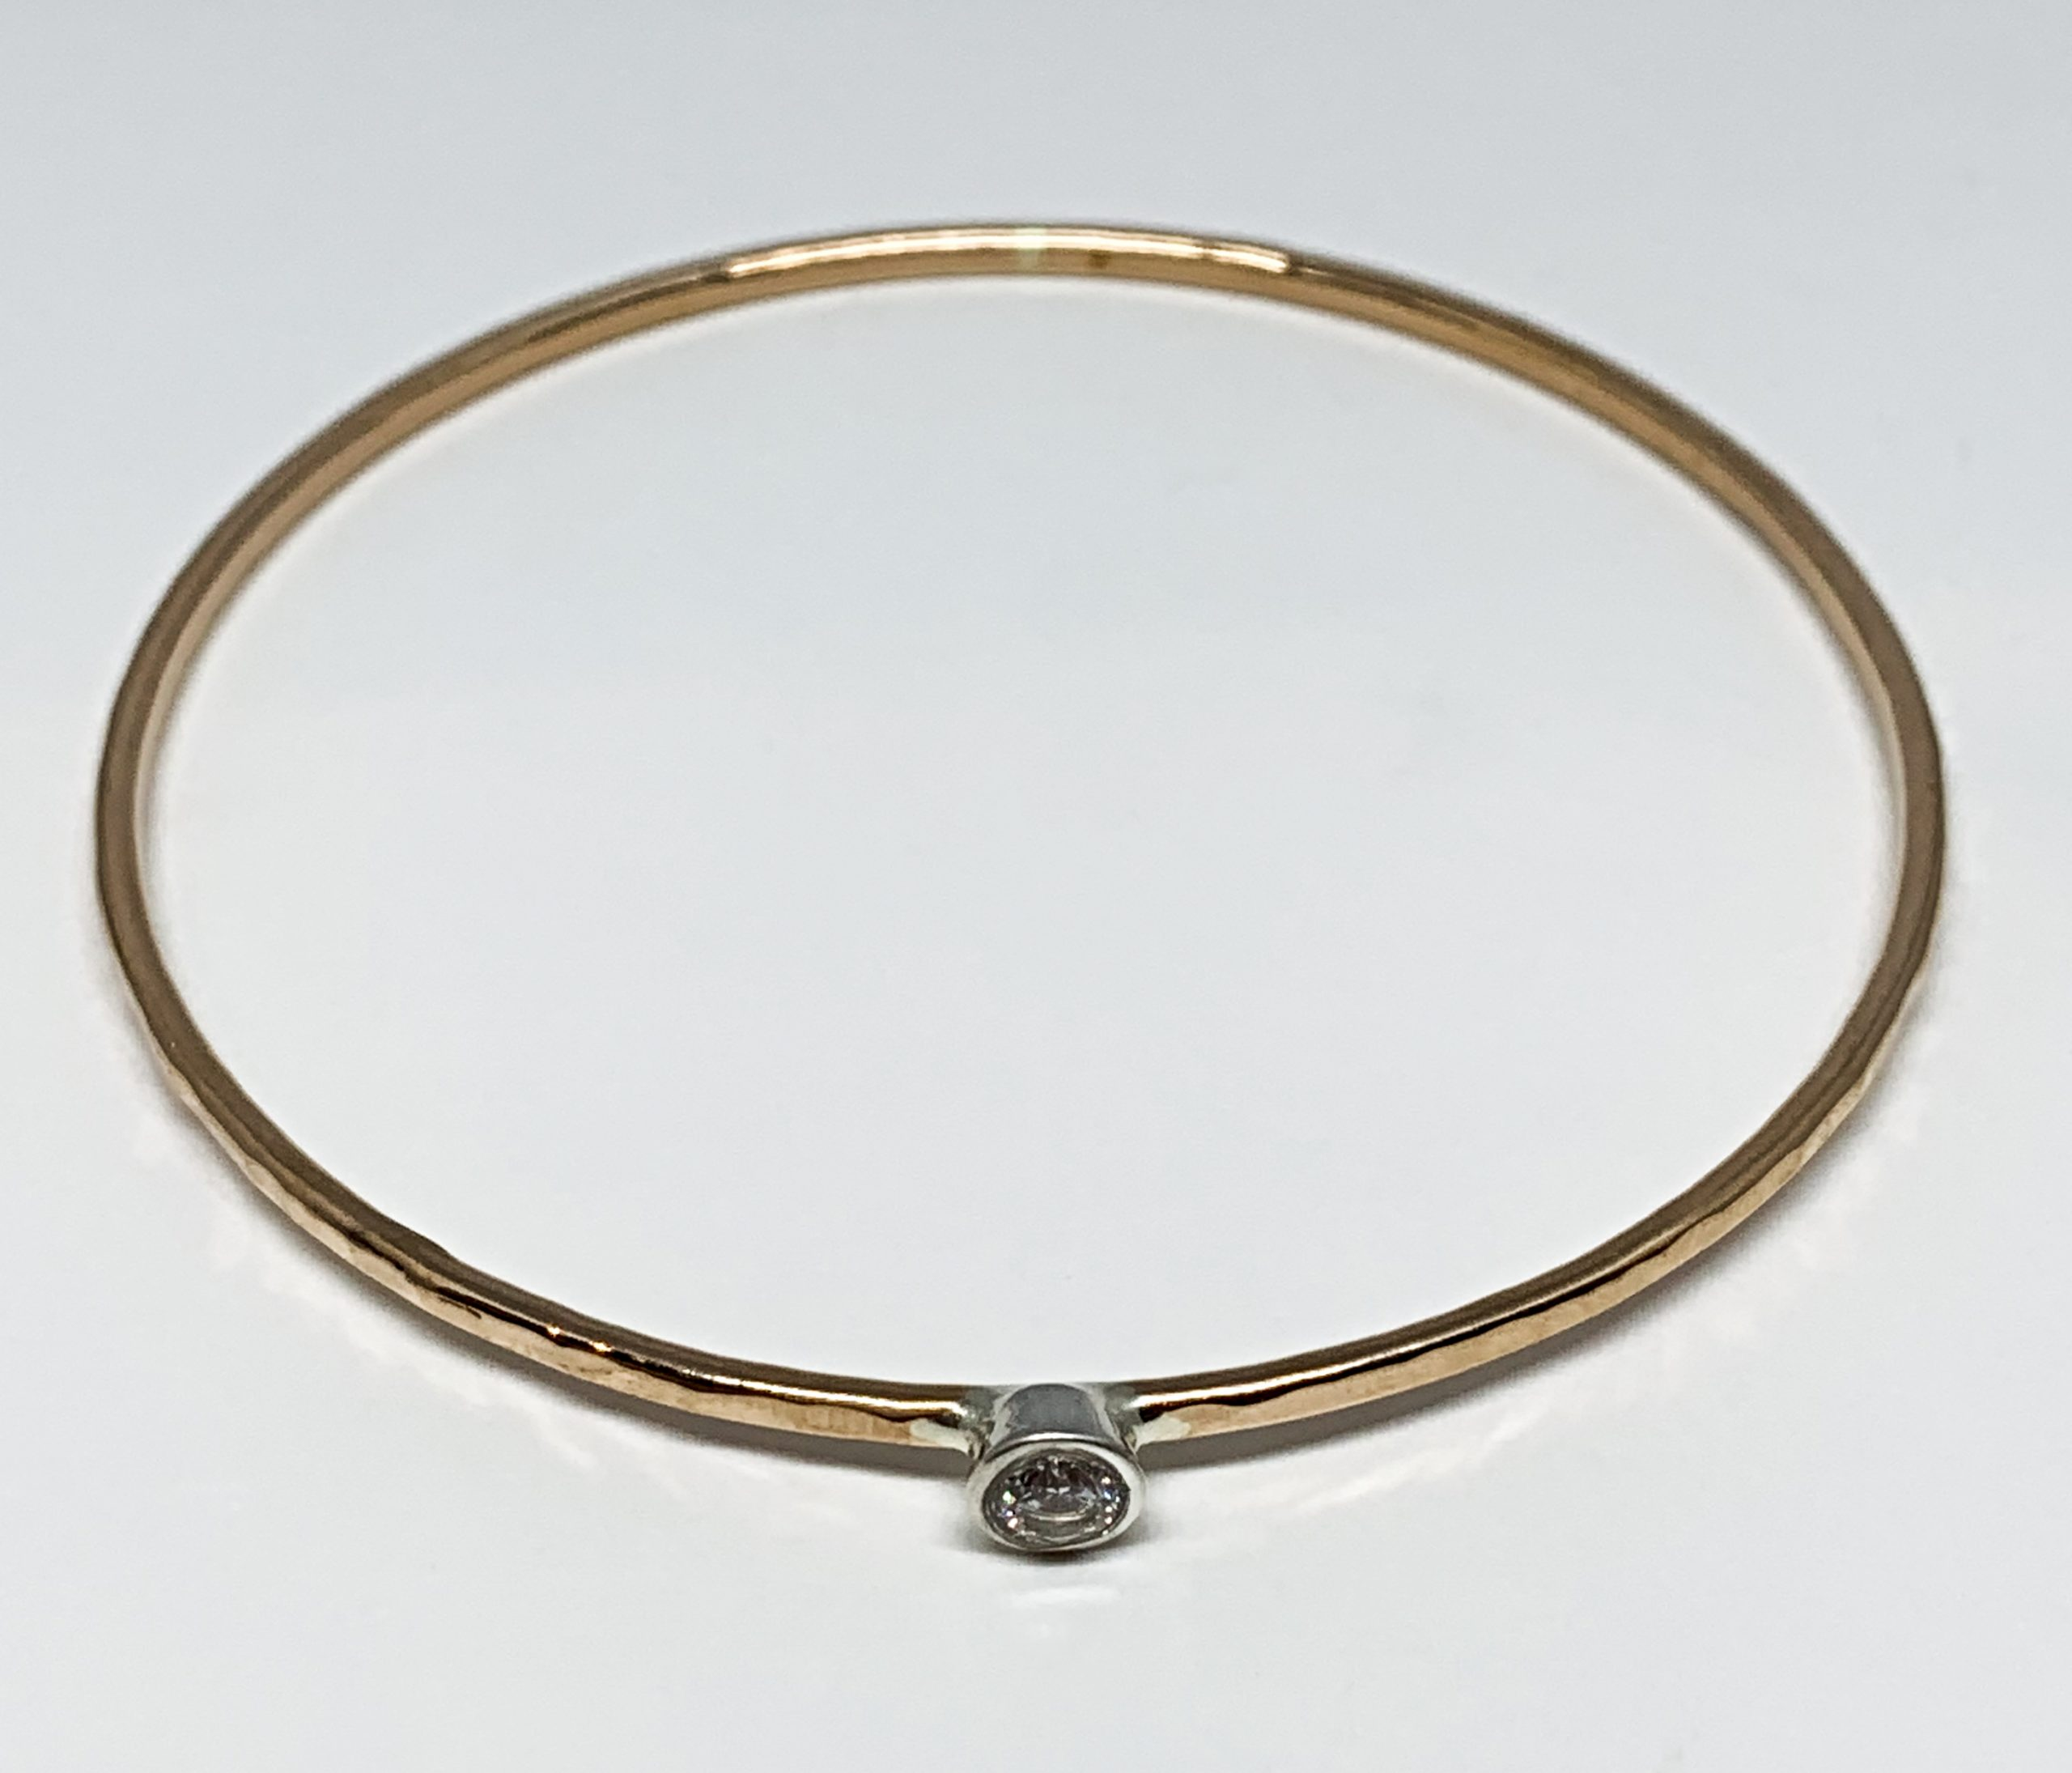 Bronze, silver, and CZ bangle by Karyn Chopik | Effusion Art Gallery + Cast Glass Studio, Invermere BC